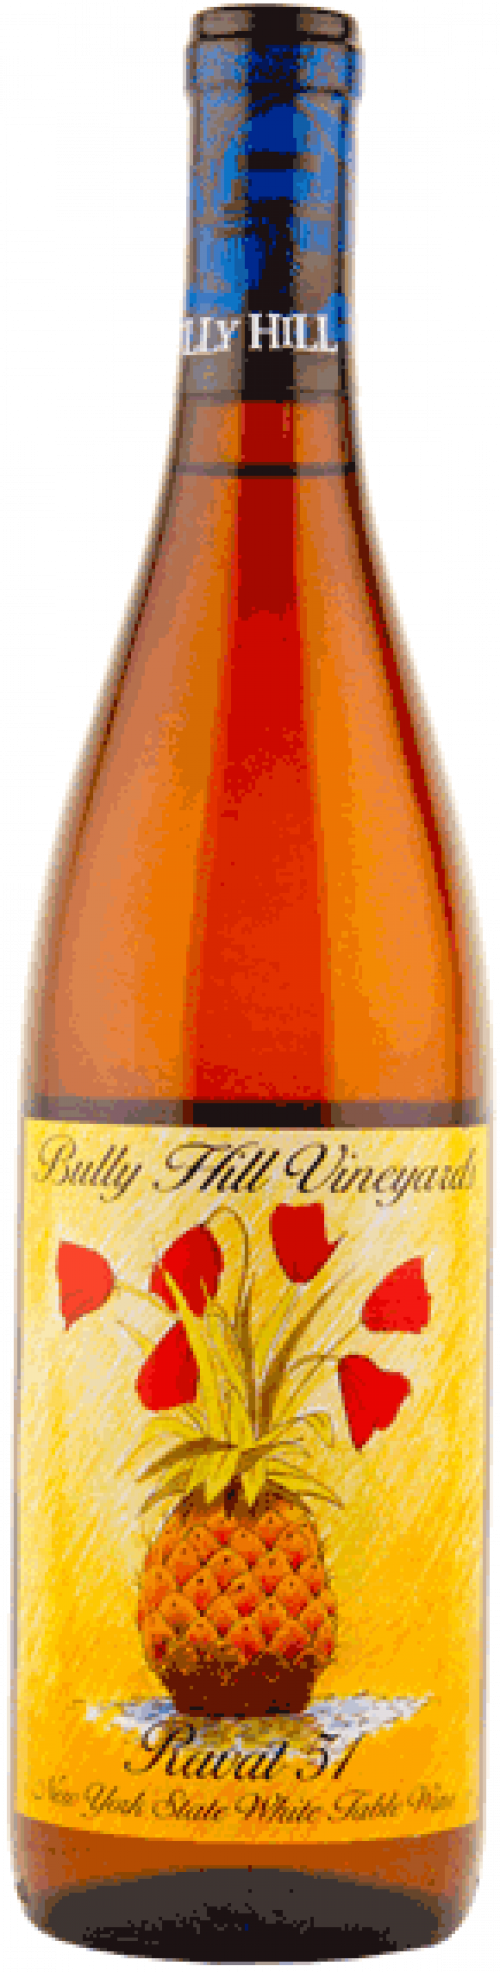 Bully Hill Ravat 51 Blanc 750ml